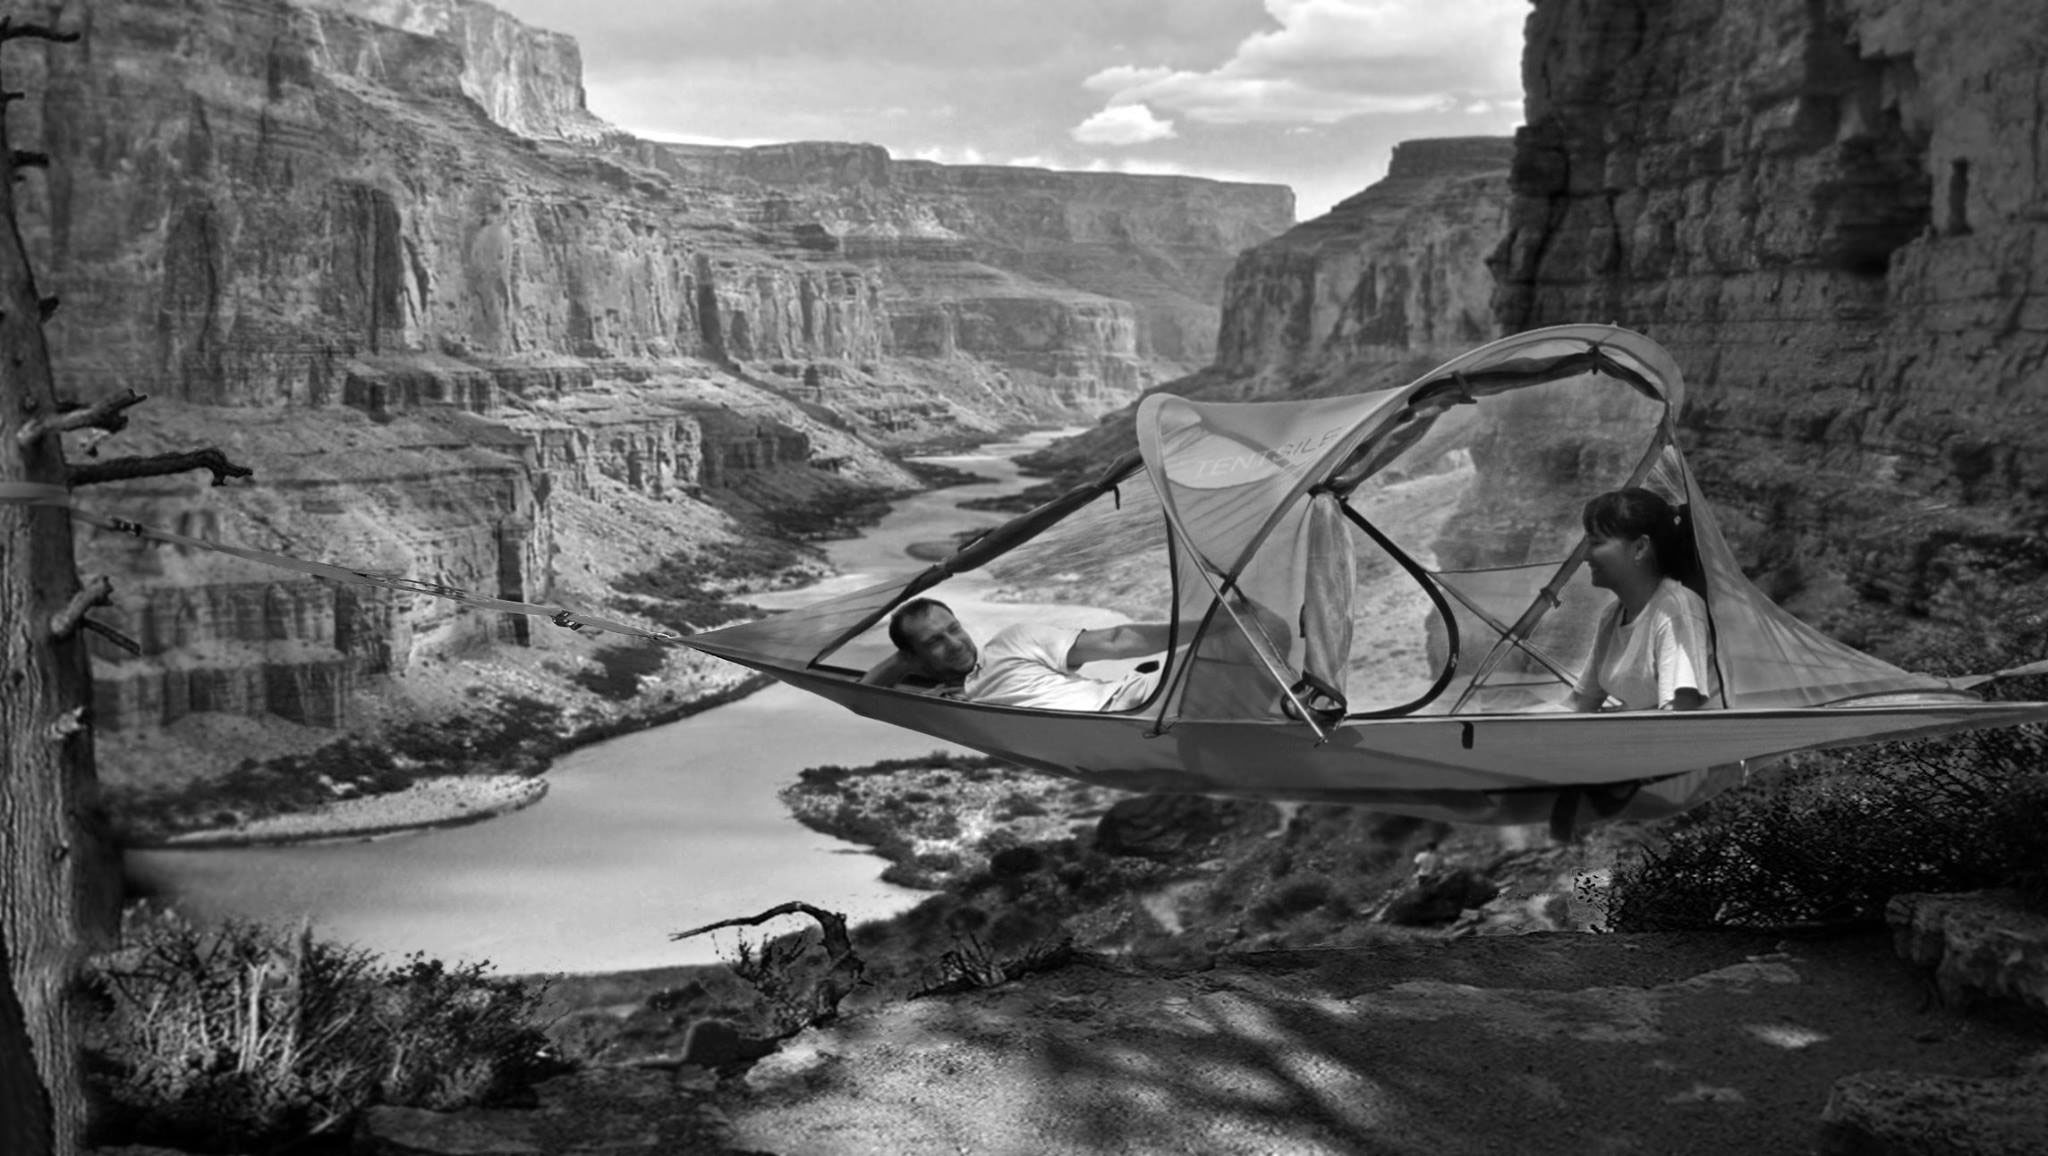 tentsile hammock tree tent camping every where amazing  tentsile hammock tree tent camping every where amazing couple bw      rh   slacklineshop   au